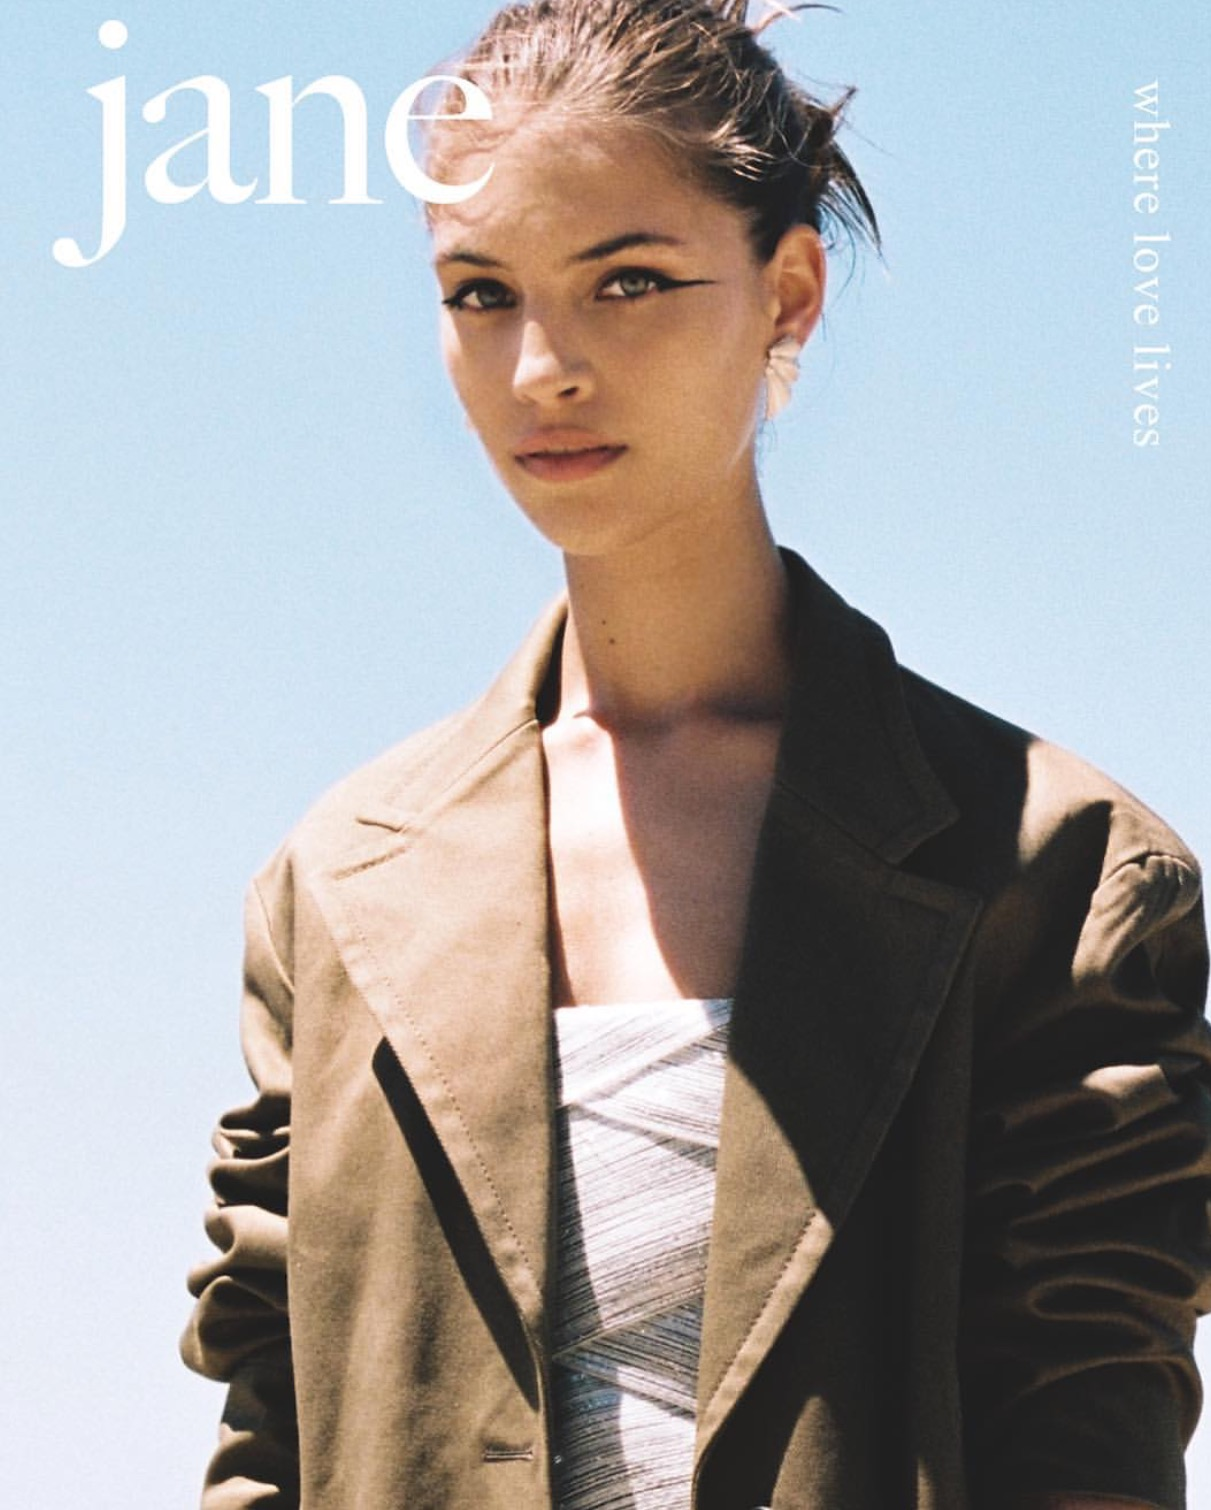 Bernie photographed by Odin Wilde for the Cover of Jane magazine